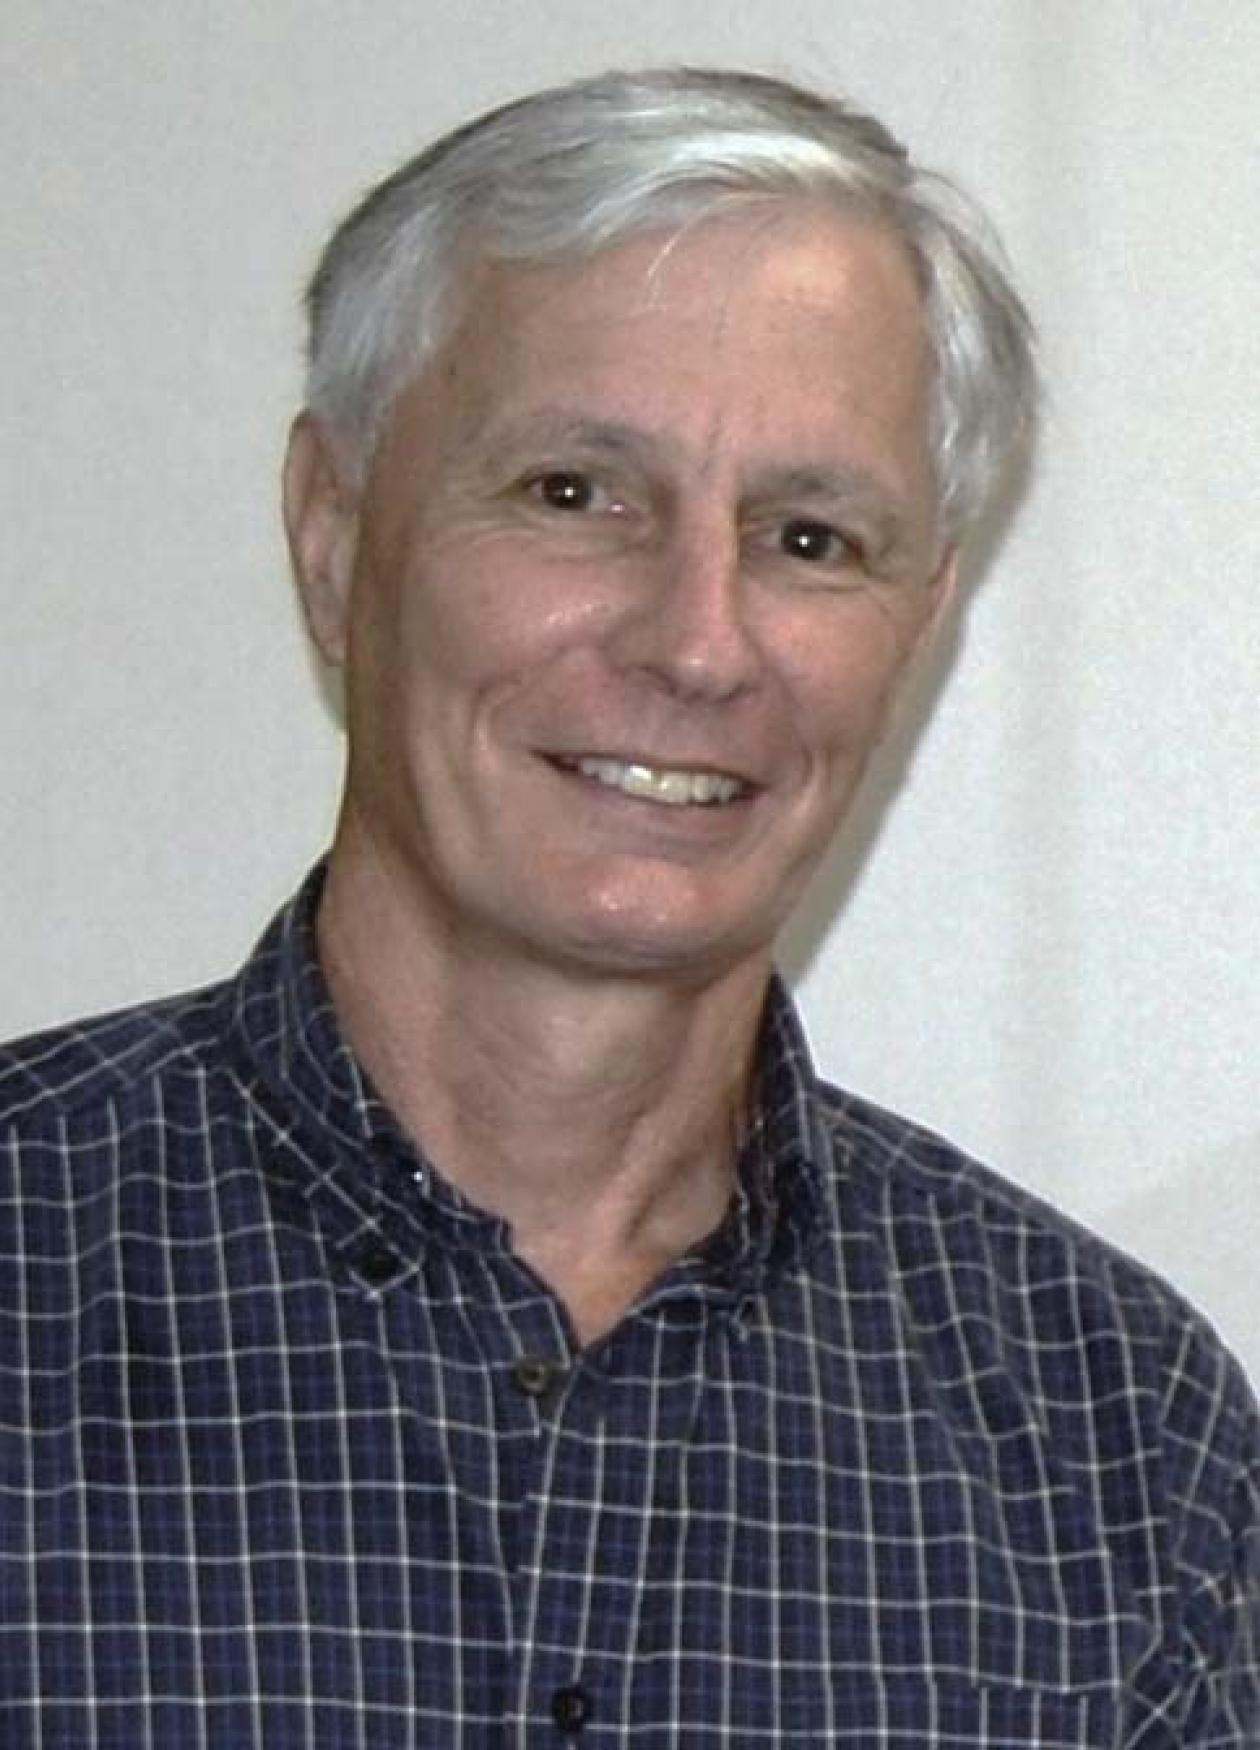 Russell, with white hair, wearing a black and white grid patterned shirt